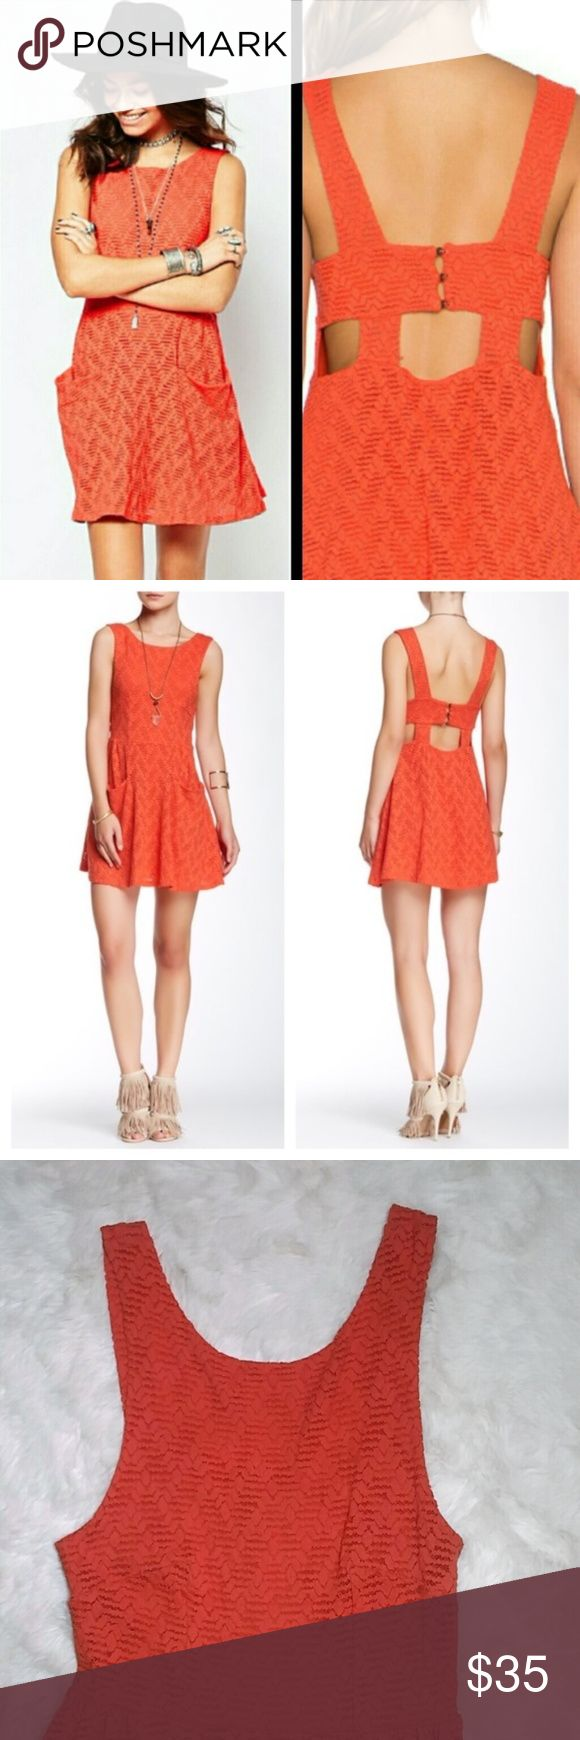 """Free People Lace Poppy Dress in Persimmon Cutout S A cute, sleeveless, fit and flare, skater dress with a unique cut out design. Back three button closure detail and pockets you can actually use! They can comfortably hold your phone or keys. The stretch lace is feminine and fun and the super soft jersey lining is comfortable and easy to wear. Orange  Approximately 33"""" long. Approximately 13.5"""" across the bust, laid flat.  The model is 5'8.5"""" 32-24-34 and is wearing a size S.  Shell: 56%…"""